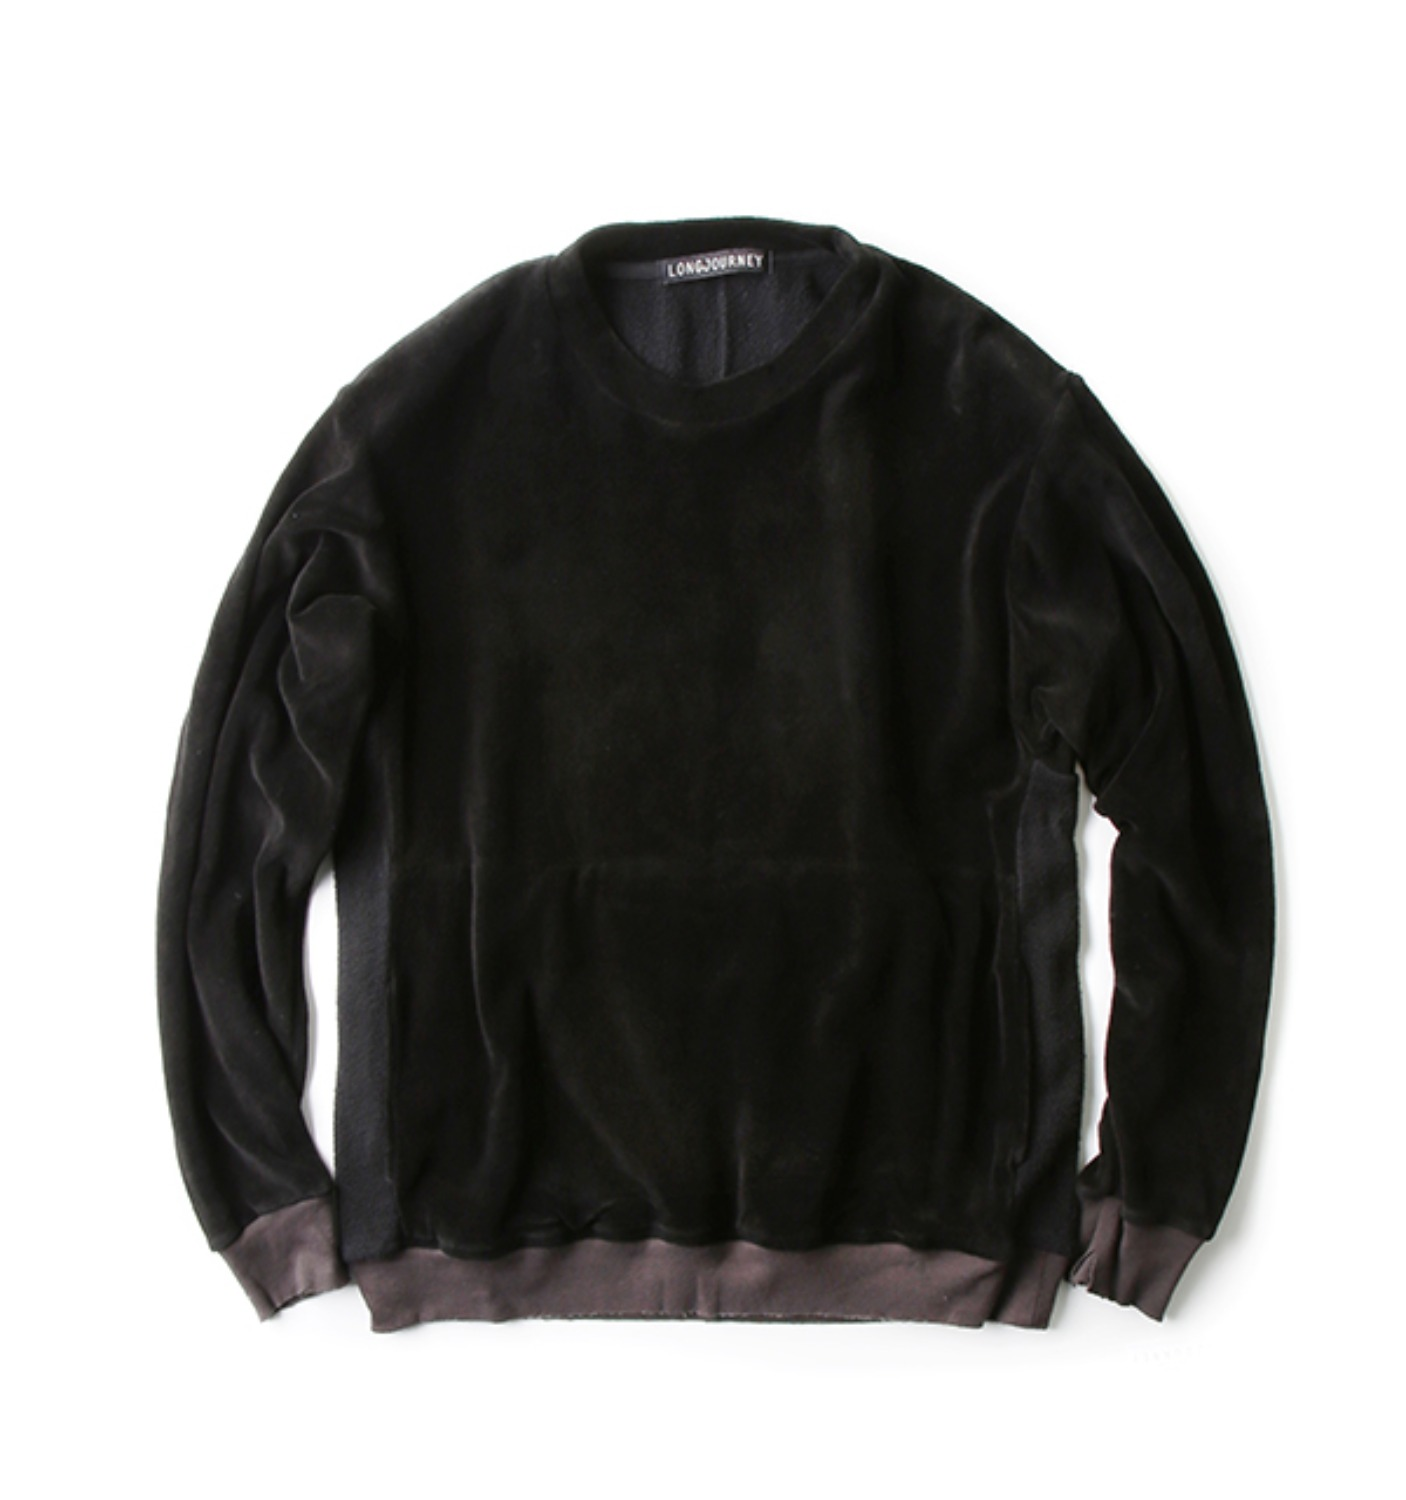 NASH SWEATSHIRT BLACK(LJFW1611)